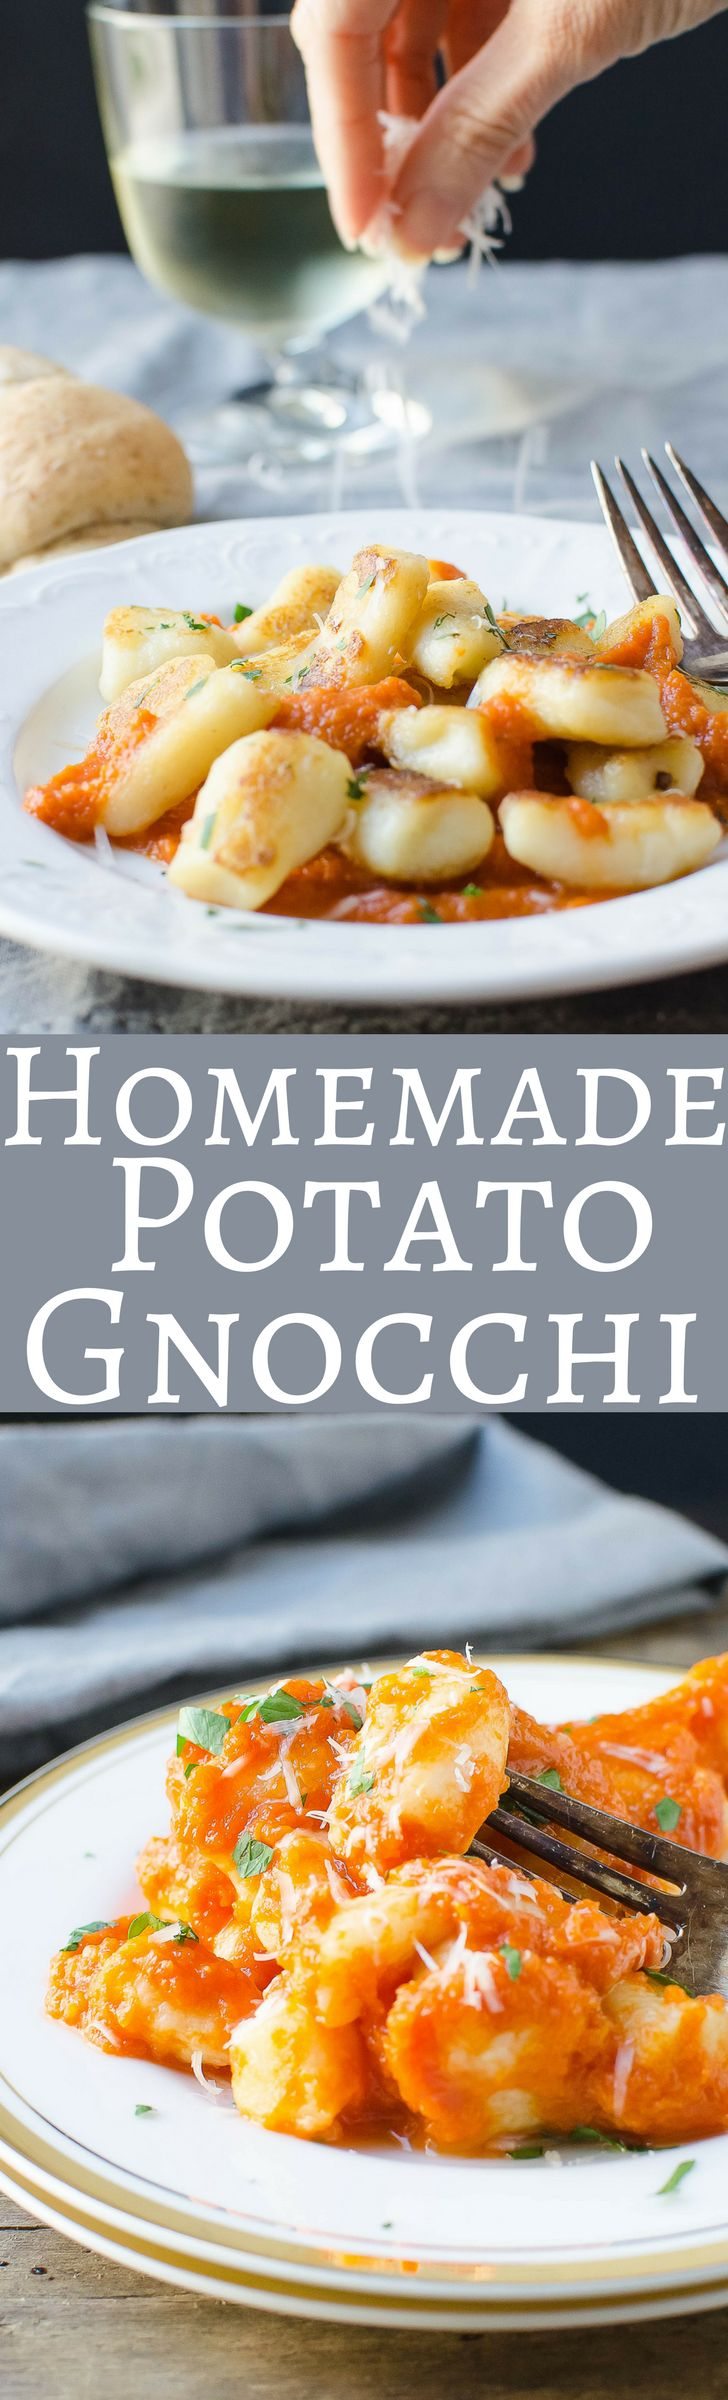 A classic recipe for homemade potato gnocchi! This one makes pillowy soft dumplings and can be frozen for a quick dinner anytime!